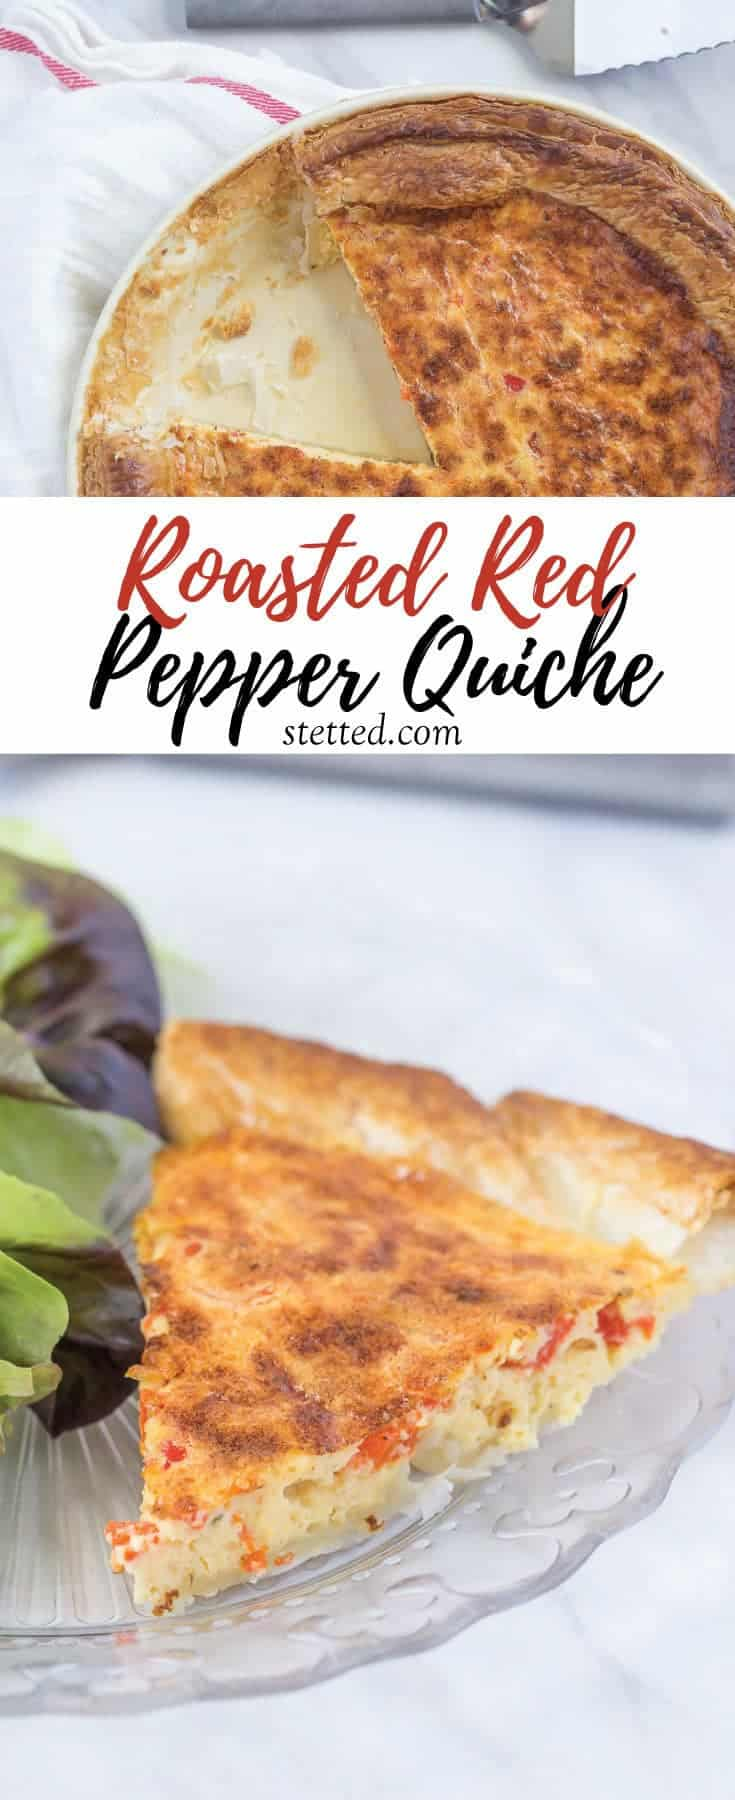 Roasted red pepper quiche is baked in a puff pastry crust for ultimate flakiness! It's a great addition to your brunch.